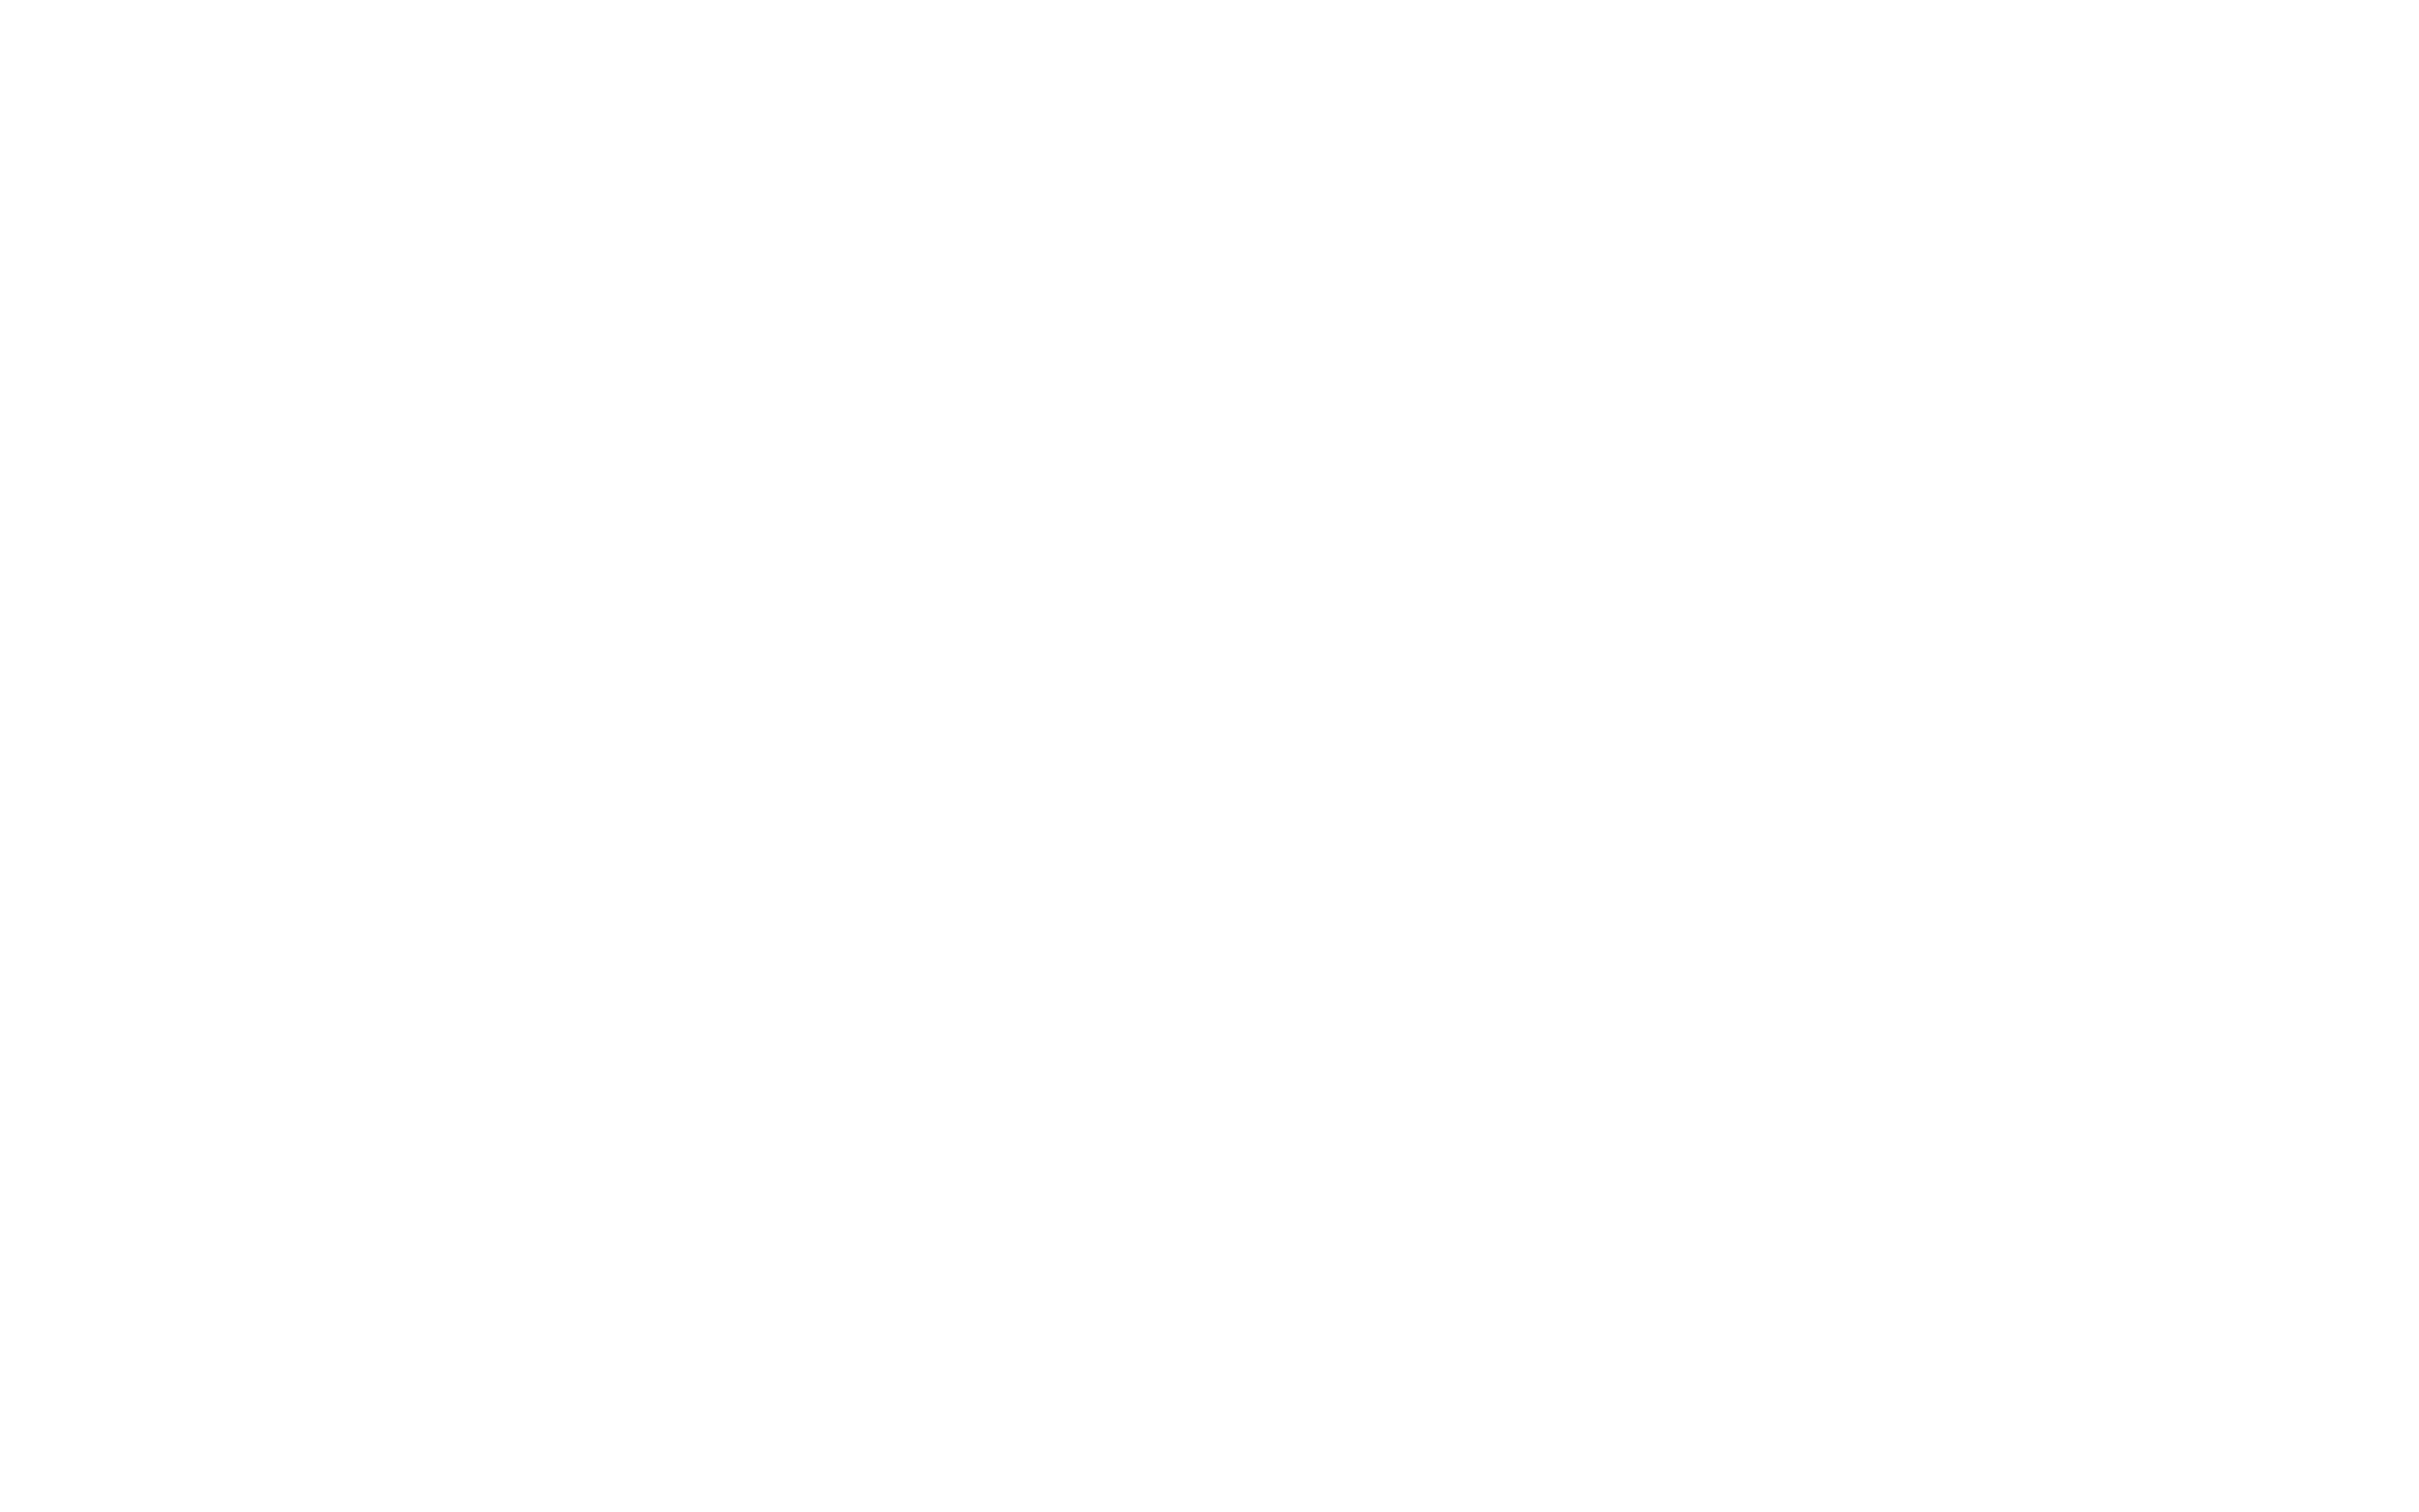 A-Lasting-Look-white-high-res copy 3